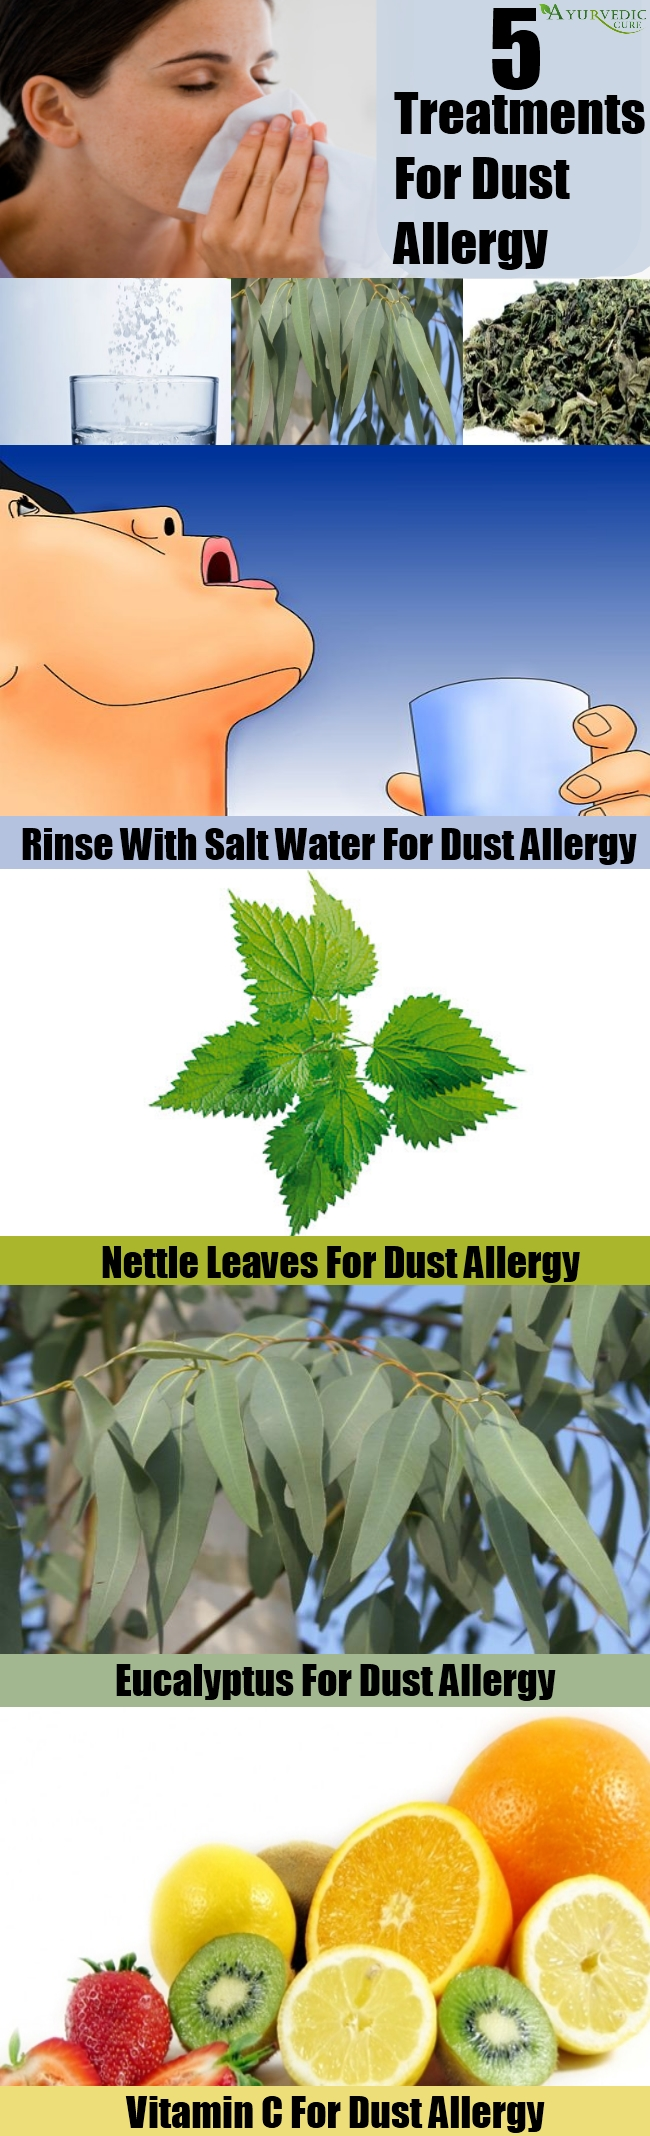 Top 5 Treatments For Dust Allergy